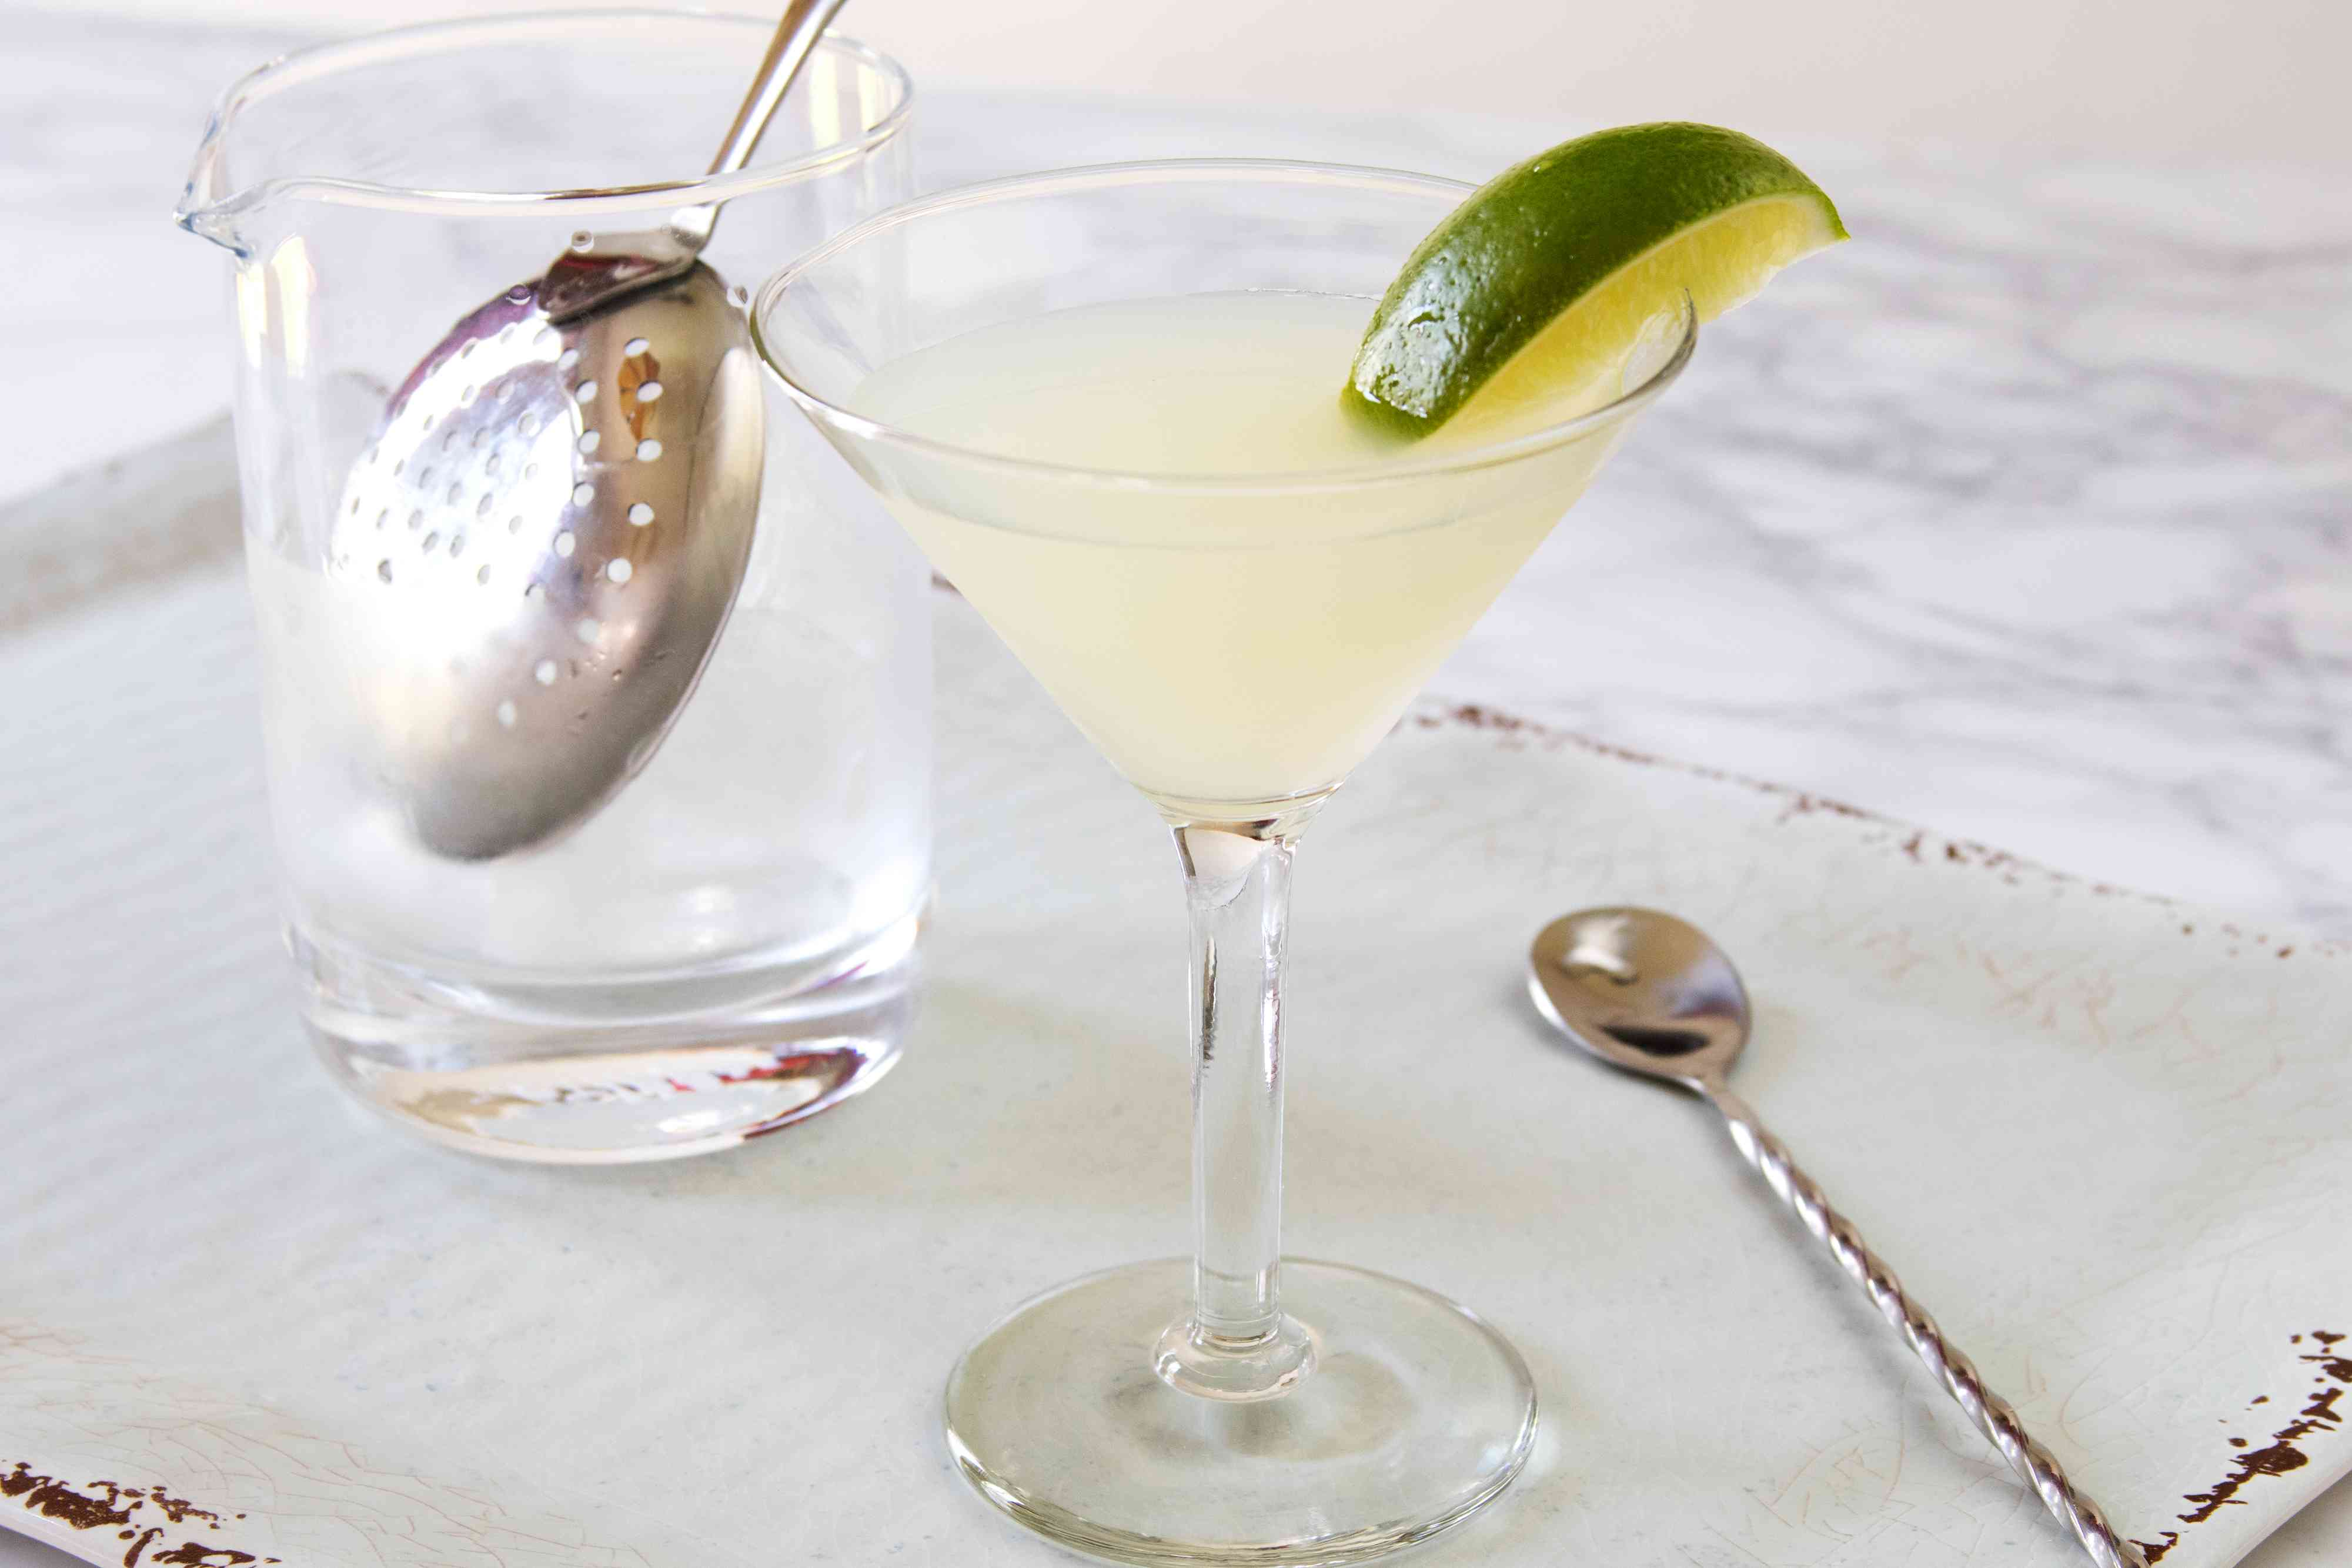 Classic gimlet cocktail garnished with lime wedge